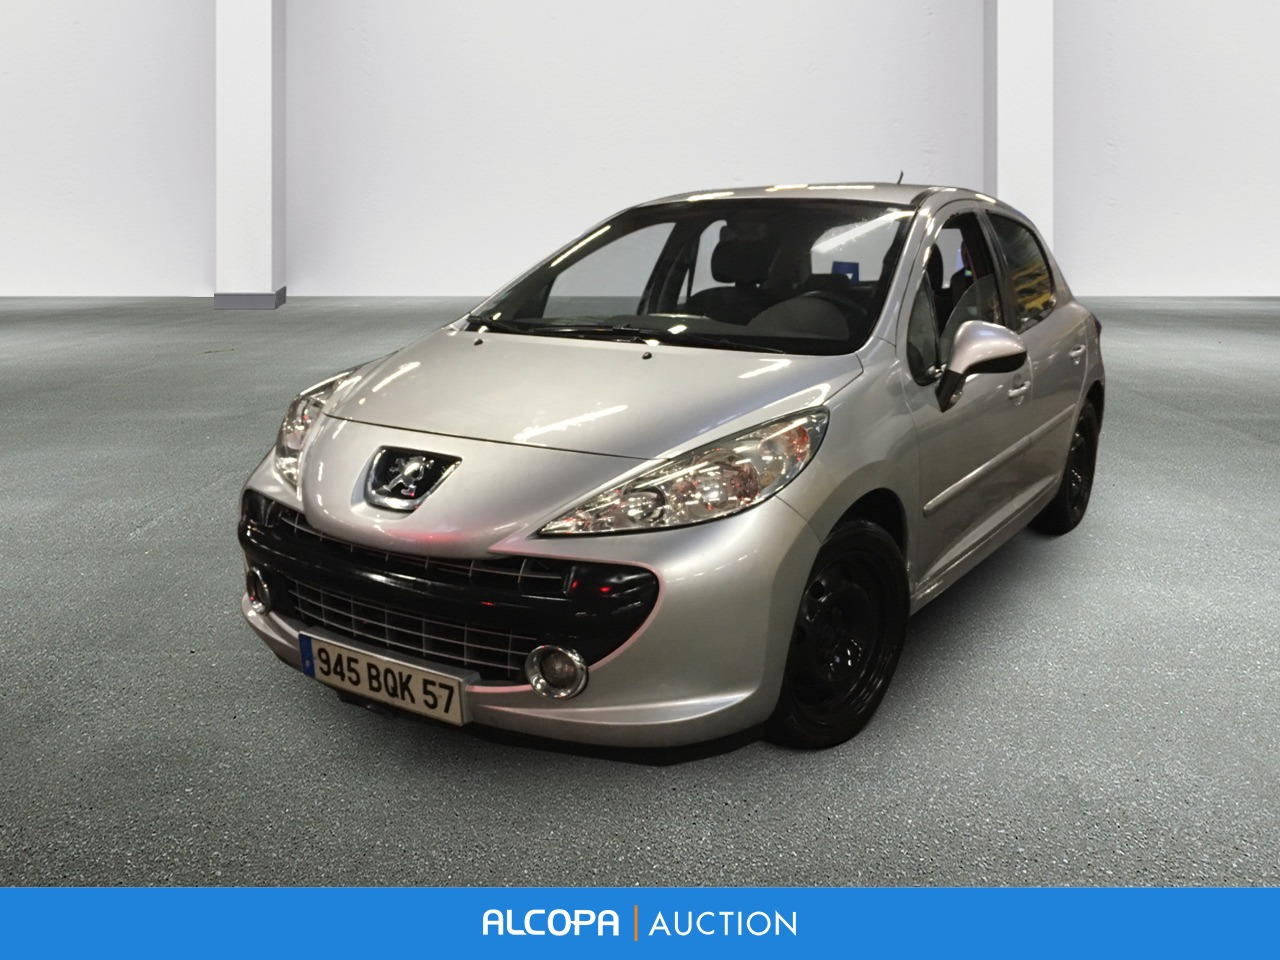 peugeot 207 207 1 6 hdi 16v 110ch fap sport pack alcopa auction. Black Bedroom Furniture Sets. Home Design Ideas